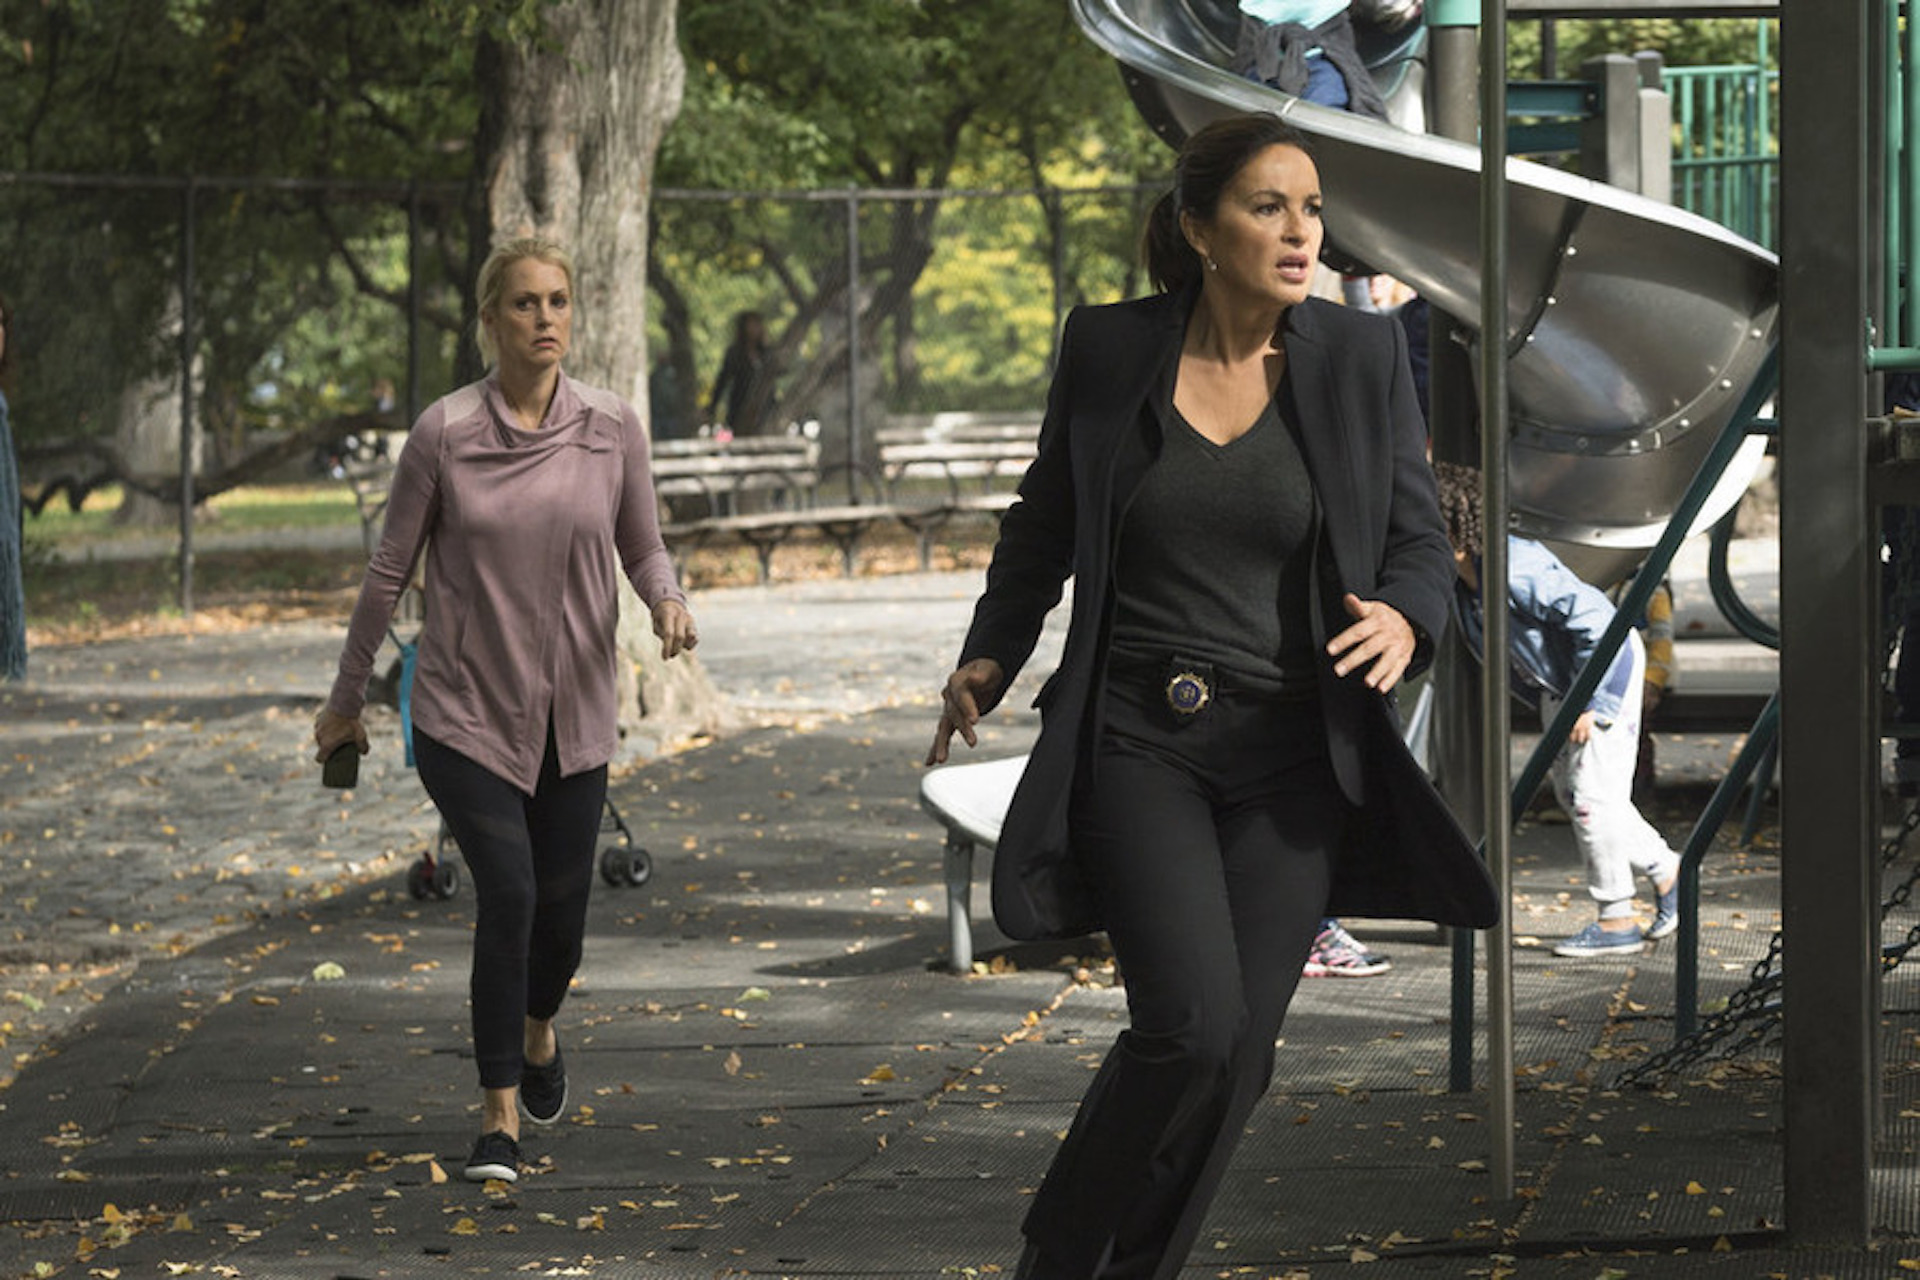 Law & Order SVU Mariska chases after abducted child